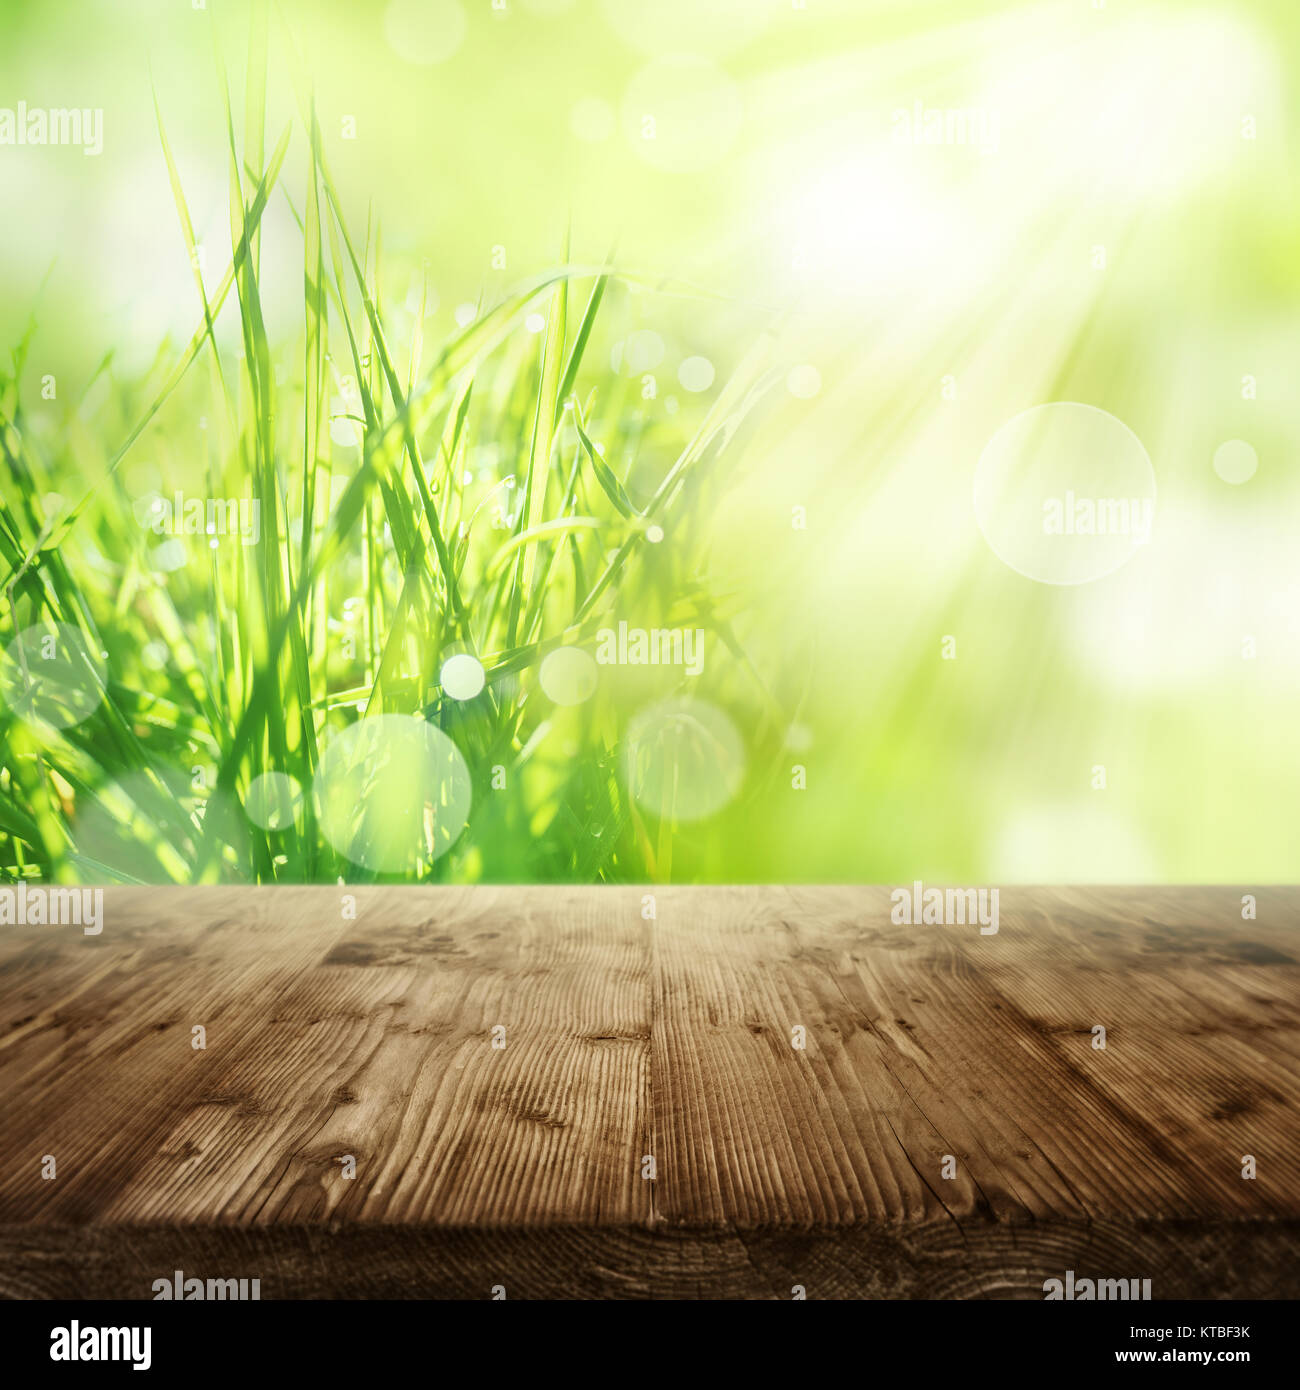 Spring background with green grass in front of an empty rustic wooden table for a concept Stock Photo